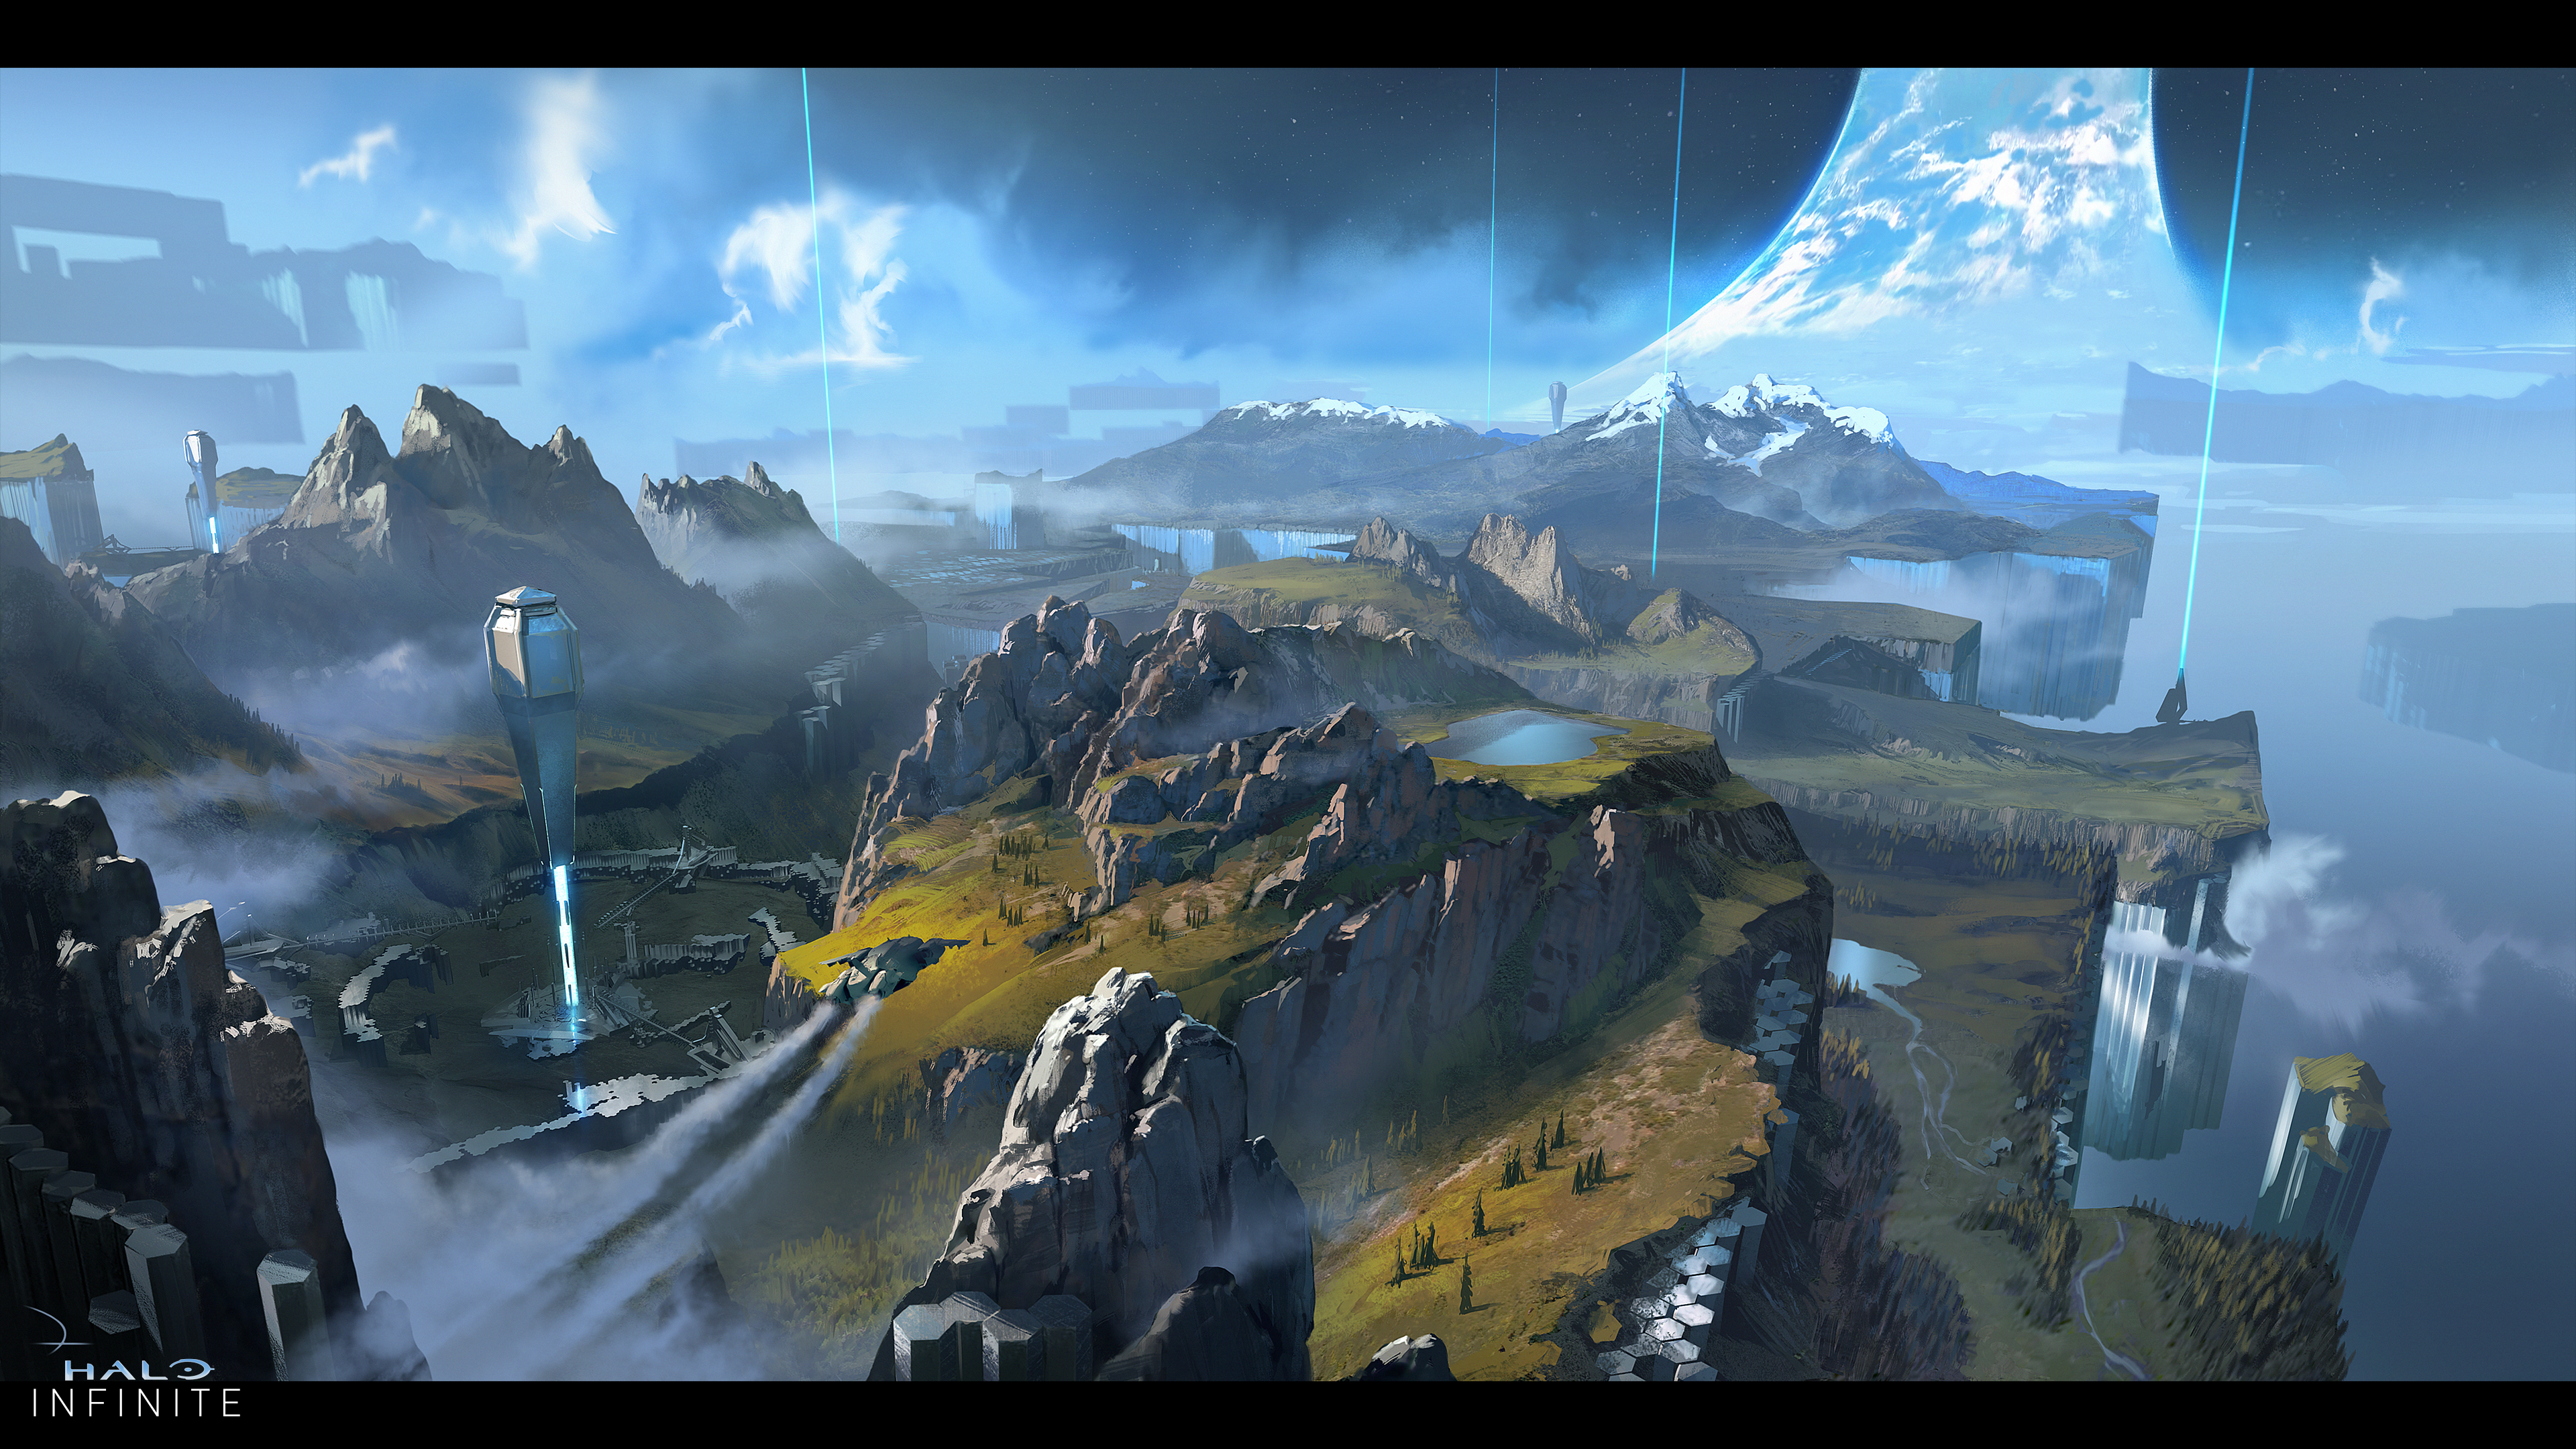 halo-infinite-2020_ascension_conceptart_letterbox_03_4k-6c70ef8985ab4329b7aeed603a16f0f7.png